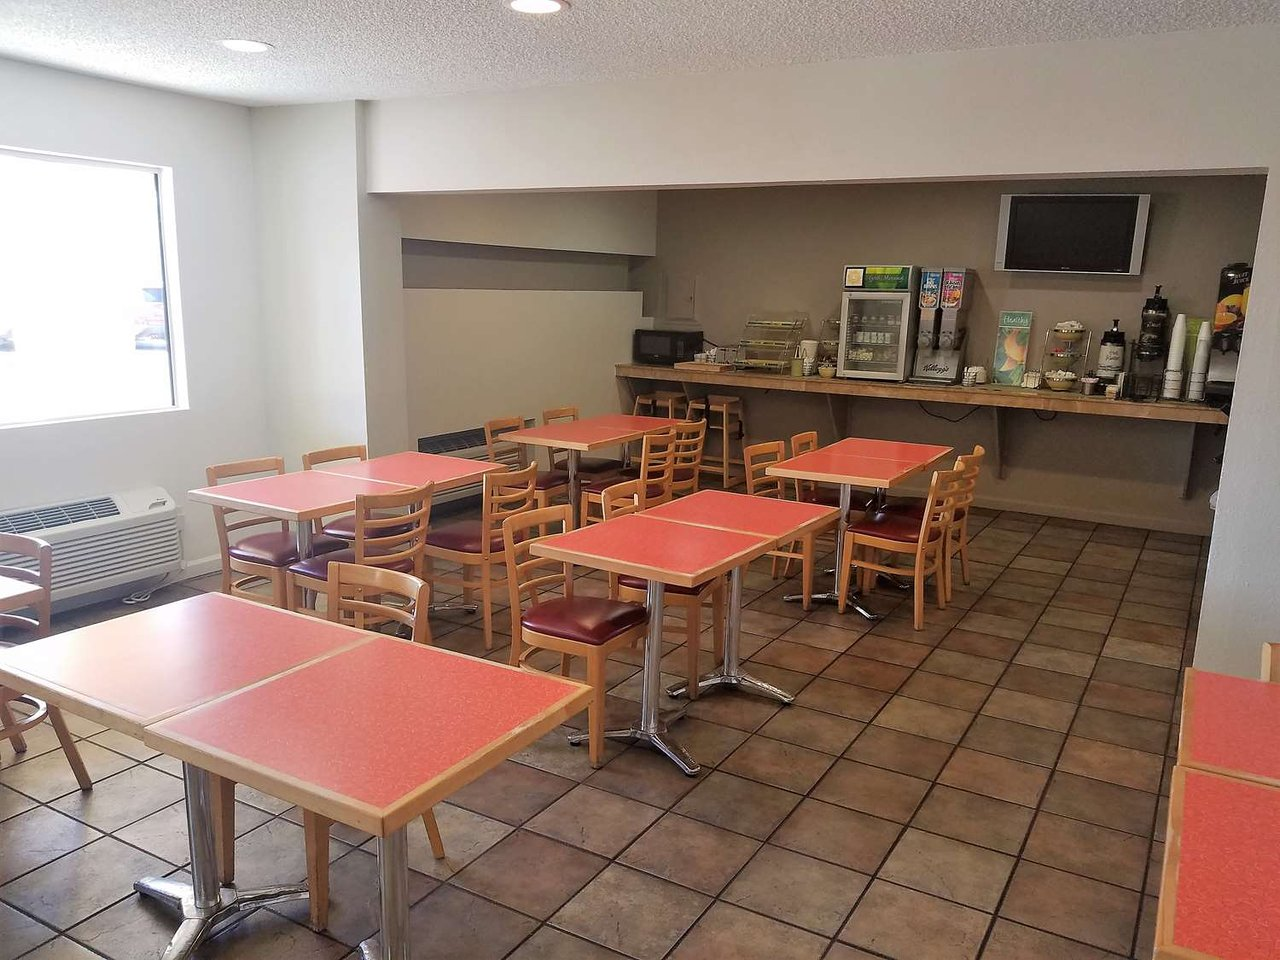 RED ROOF INN ALBUQUERQUE - Updated 2018 Prices & Hotel Reviews (NM ...